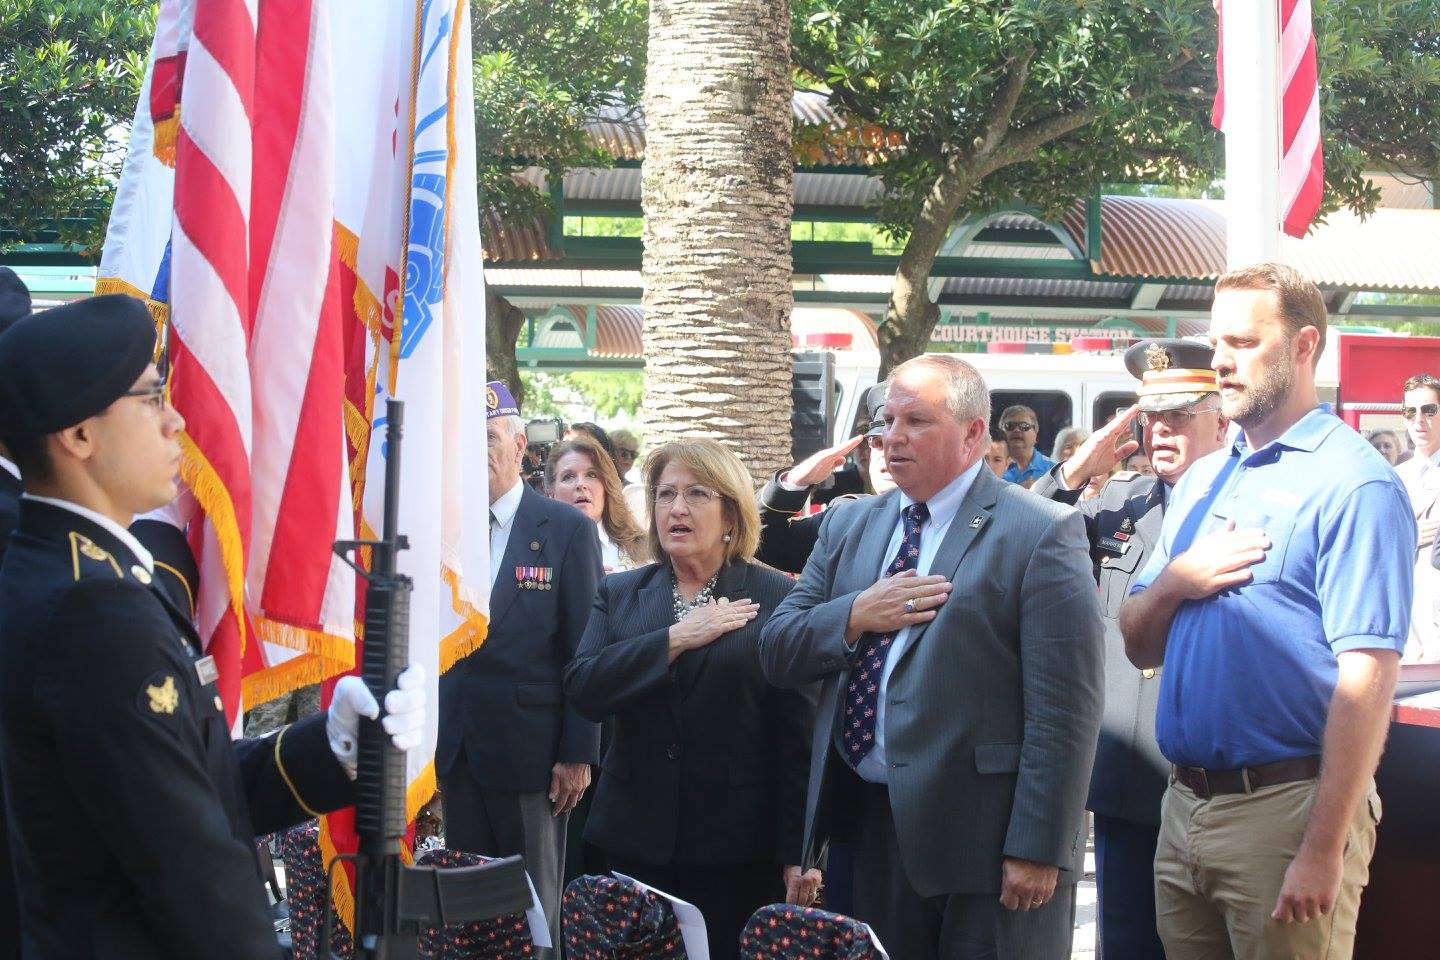 ORLANDO (FNN NEWS) -- Orange County Mayor Teresa Jacobs, LTG Jack Stultz and others honor Orange County's fallen at the Orange County Courthouse on Memorial Day. Photo: J. Willie David III/Florida National News.